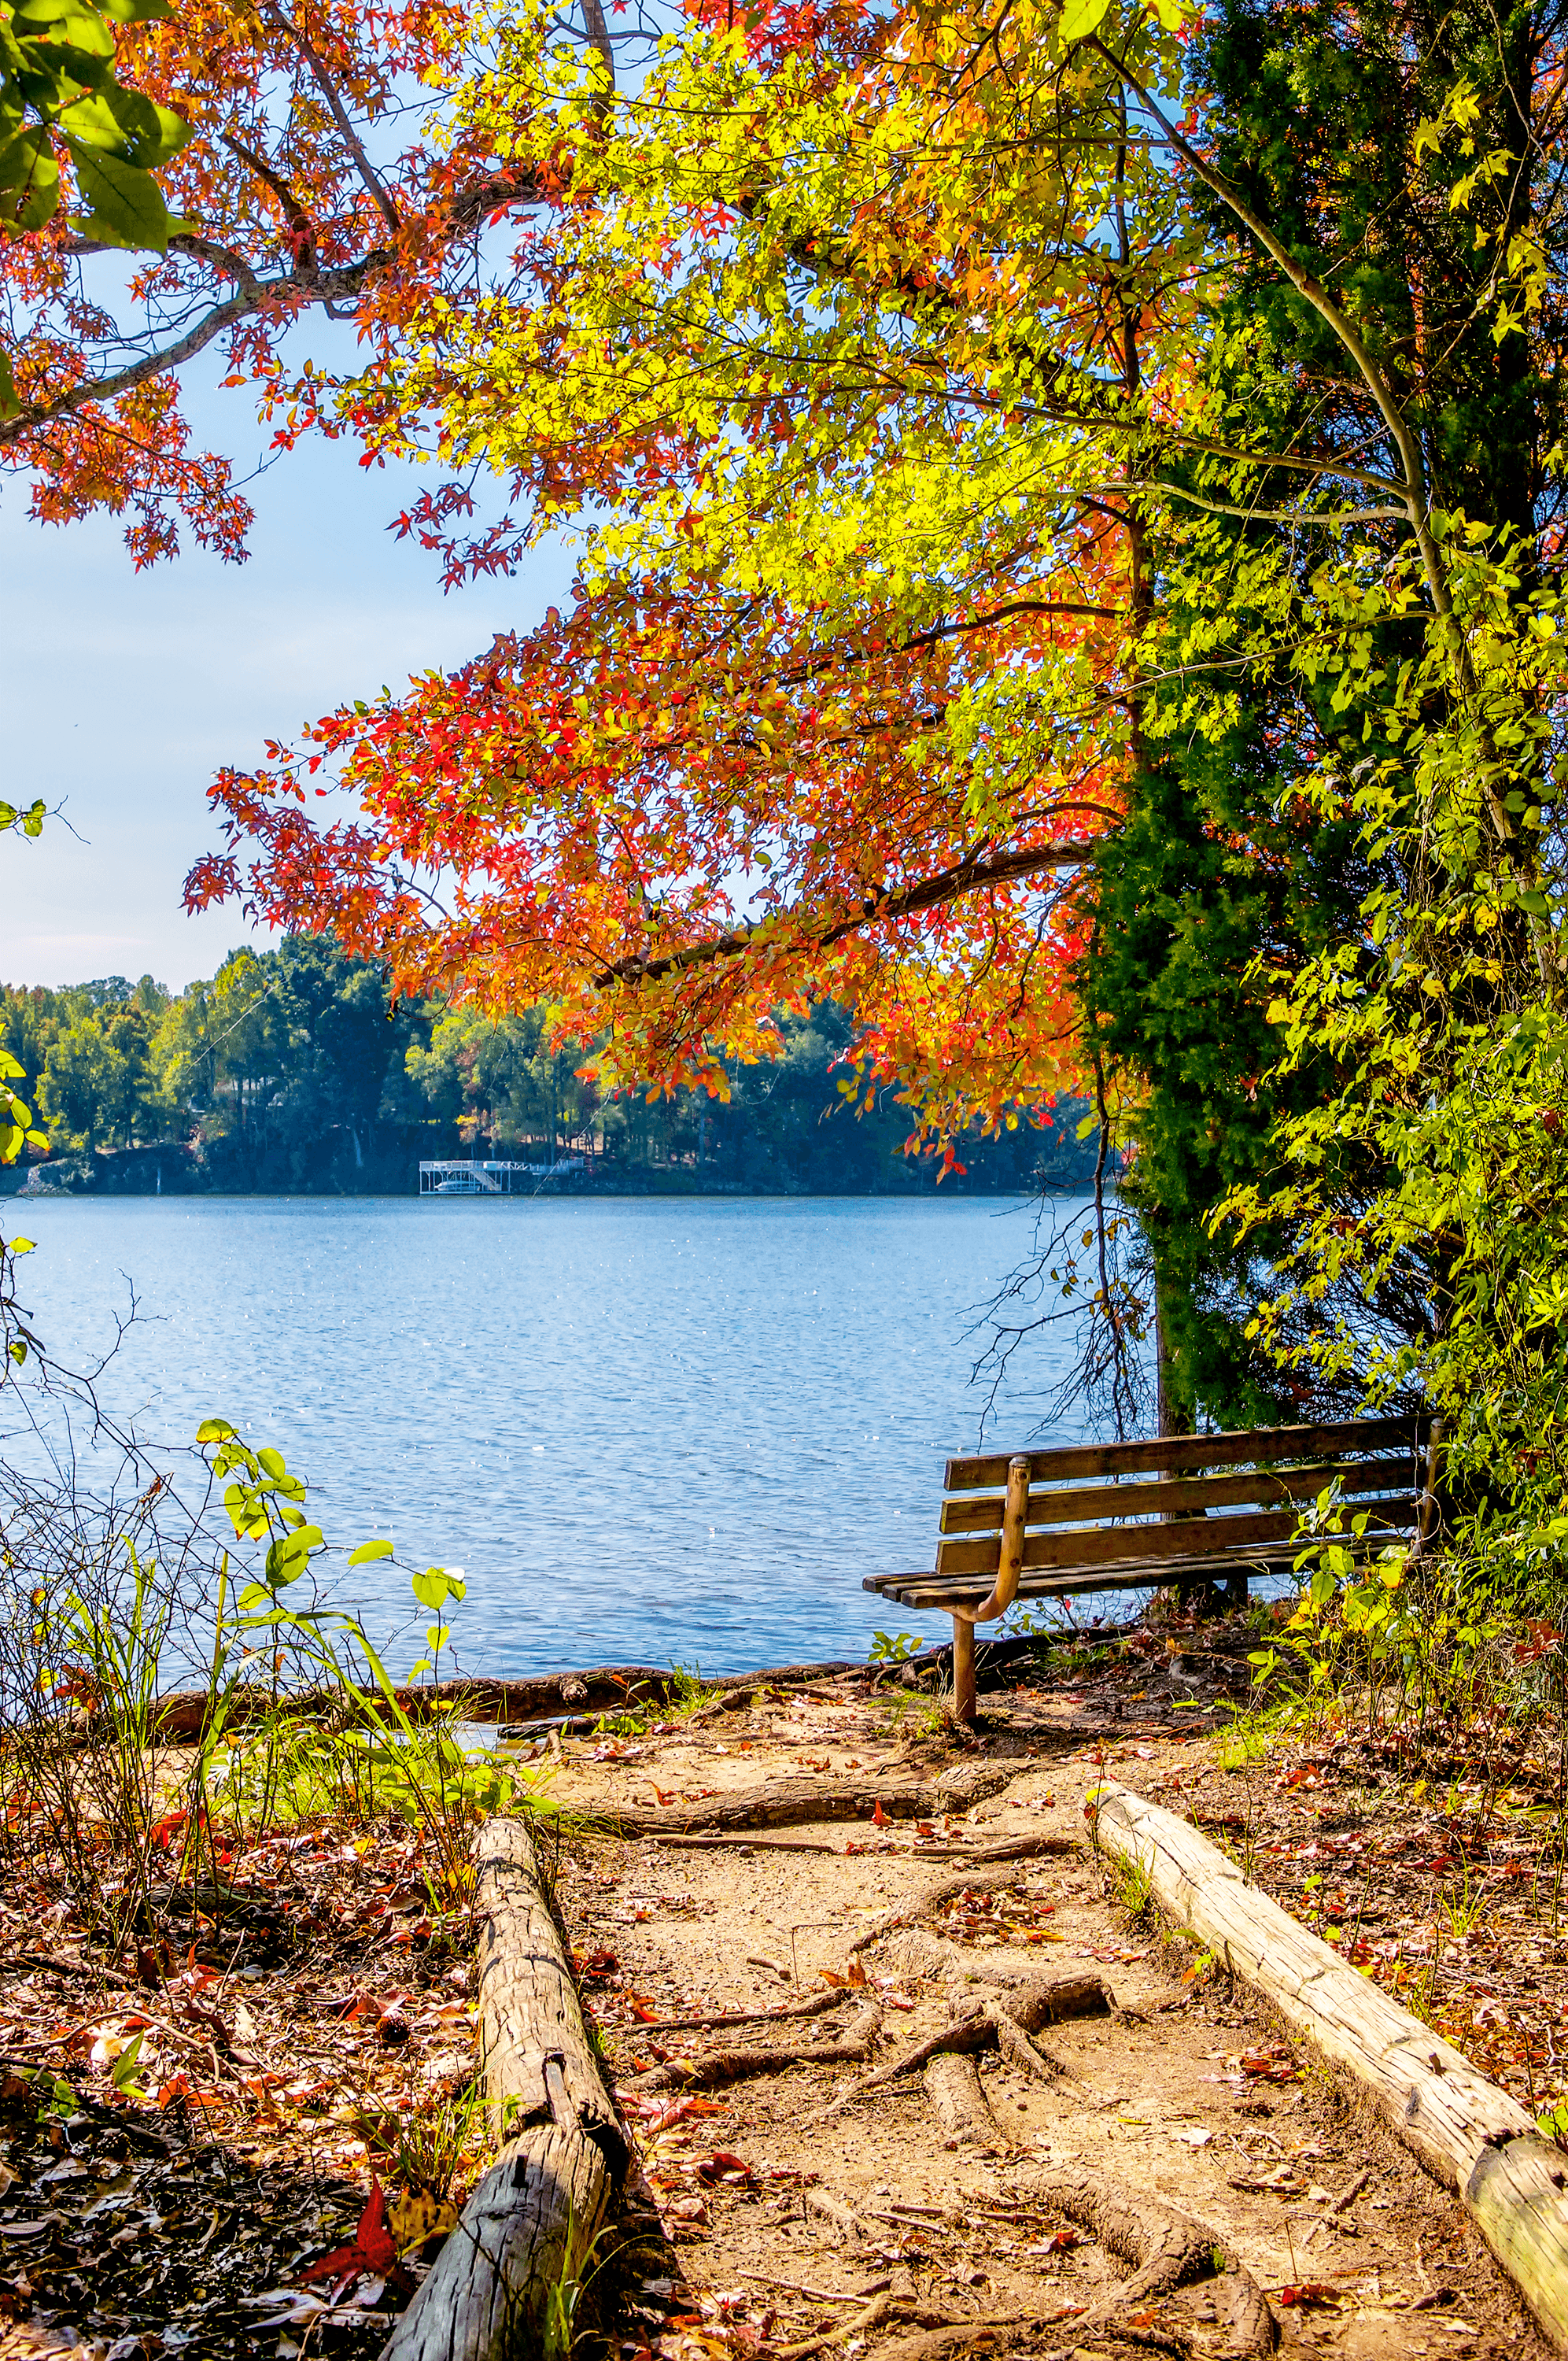 Covering an area of over 1,343 acres,  Latta Plantation Nature Preserve  is Mecklenburg County's largest nature preserve. Along the  Cattail Trail  (an easy 0.5-mile loop) you can rest on one of the shaded benches and enjoy the spectacular views of  Mountain Island Lake .